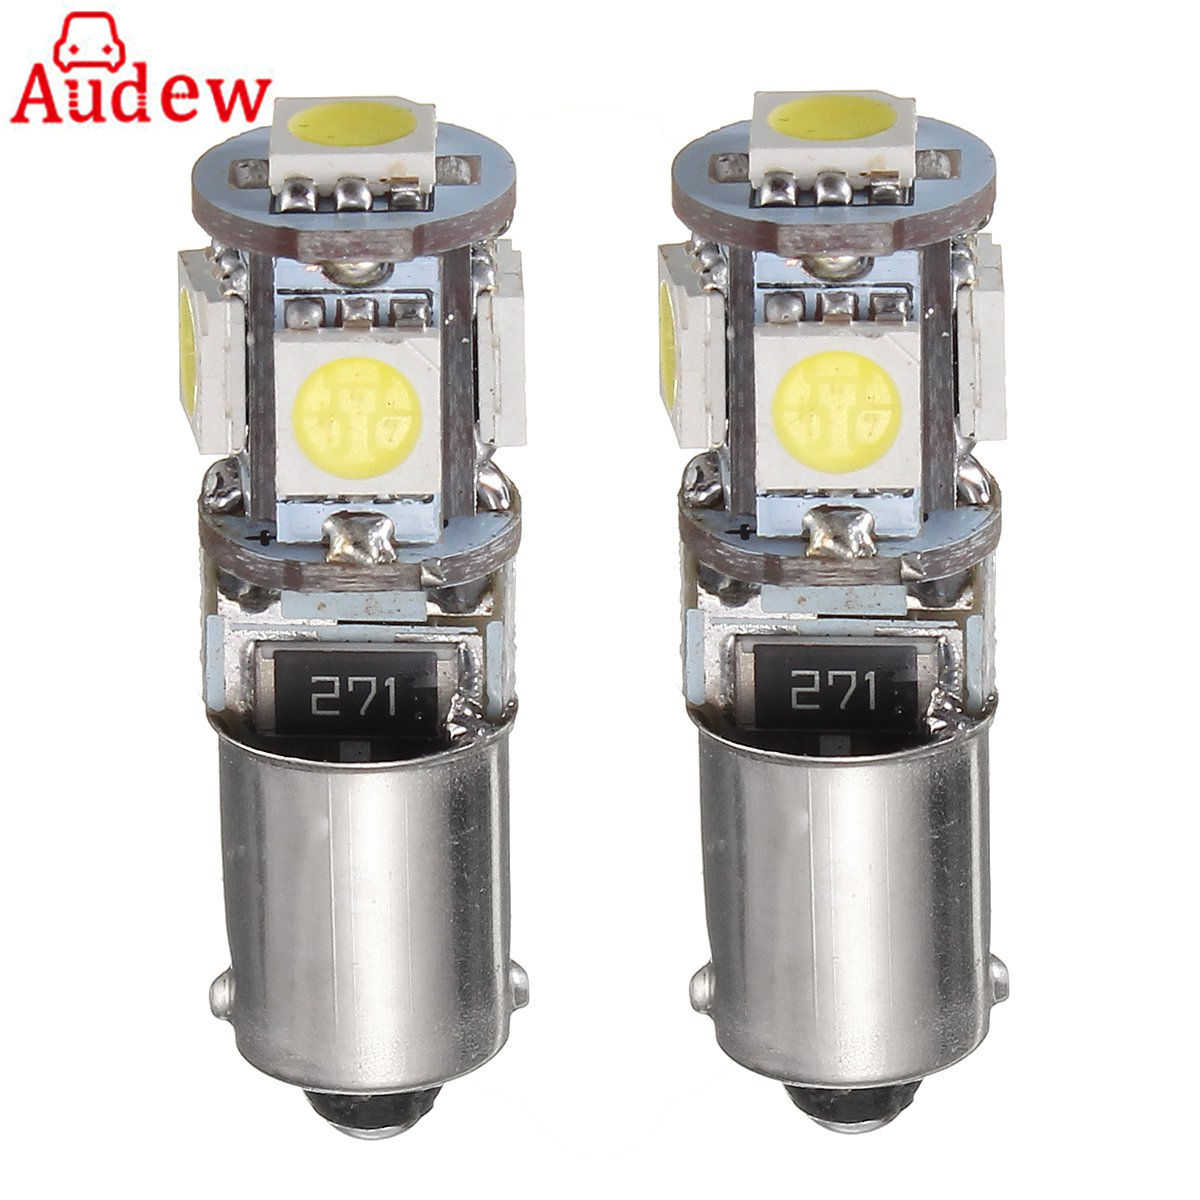 2Pcs <font><b>BAX9S</b></font> <font><b>H6W</b></font> 5-SMD Car <font><b>LED</b></font> Side Light Bulb Tail Parking Interior Lights Bulbs <font><b>6000K</b></font> Canbus Error Free 12V